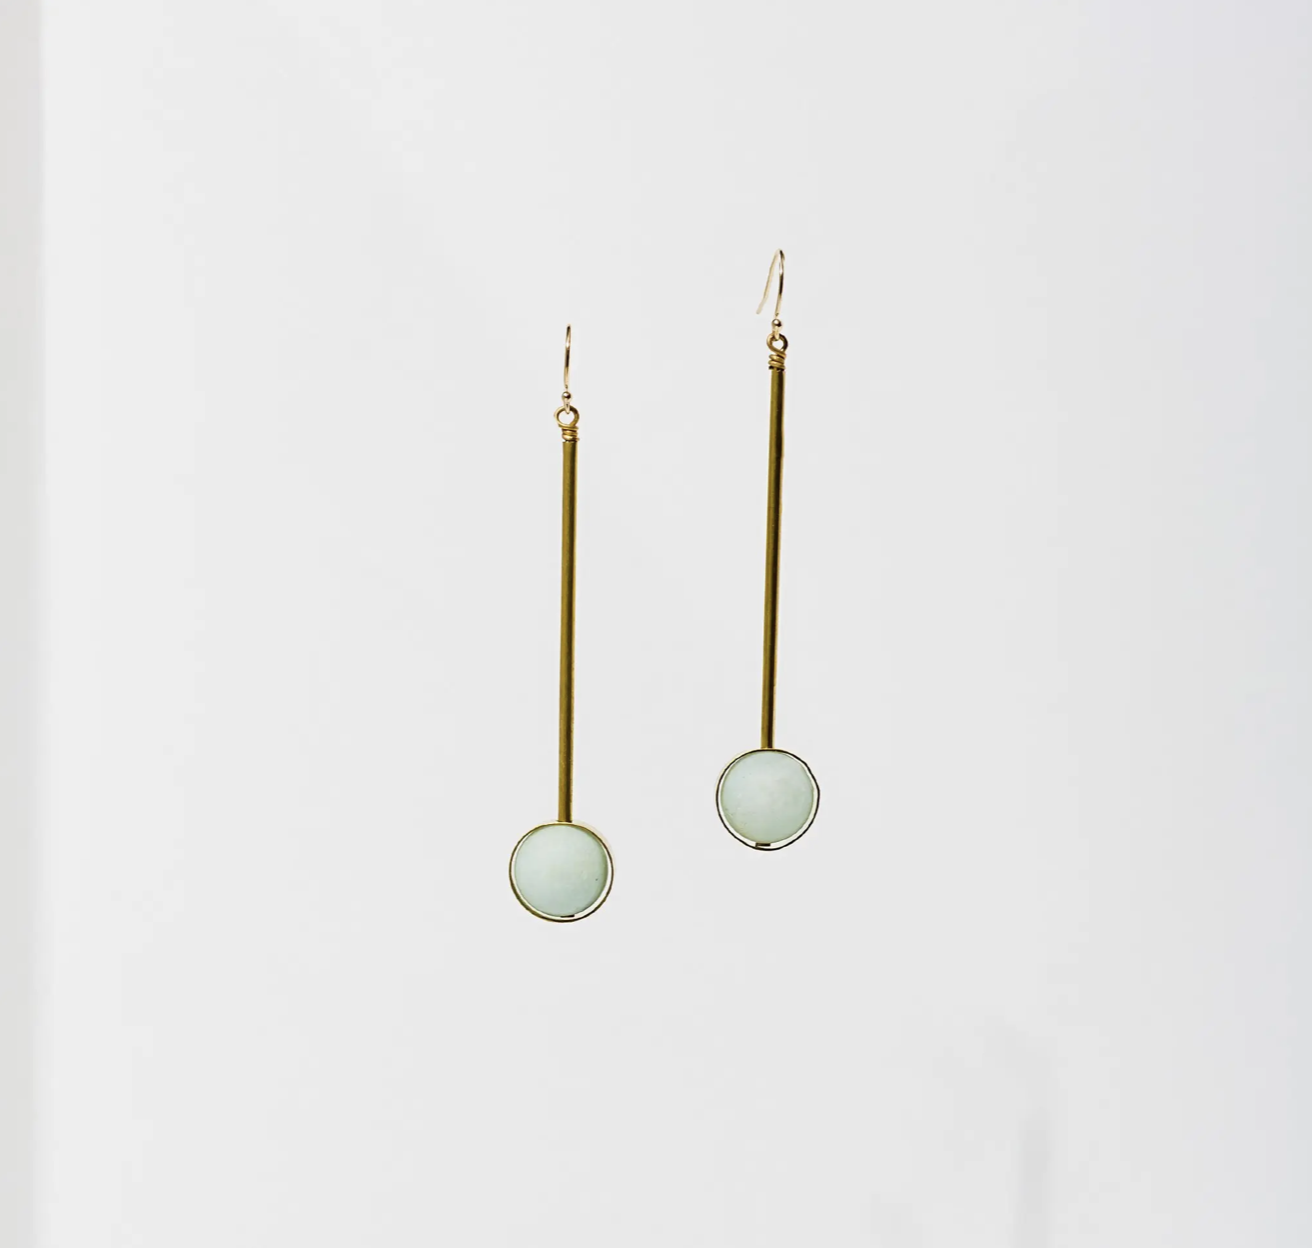 Larissa Loden Larissa Loden Earrings